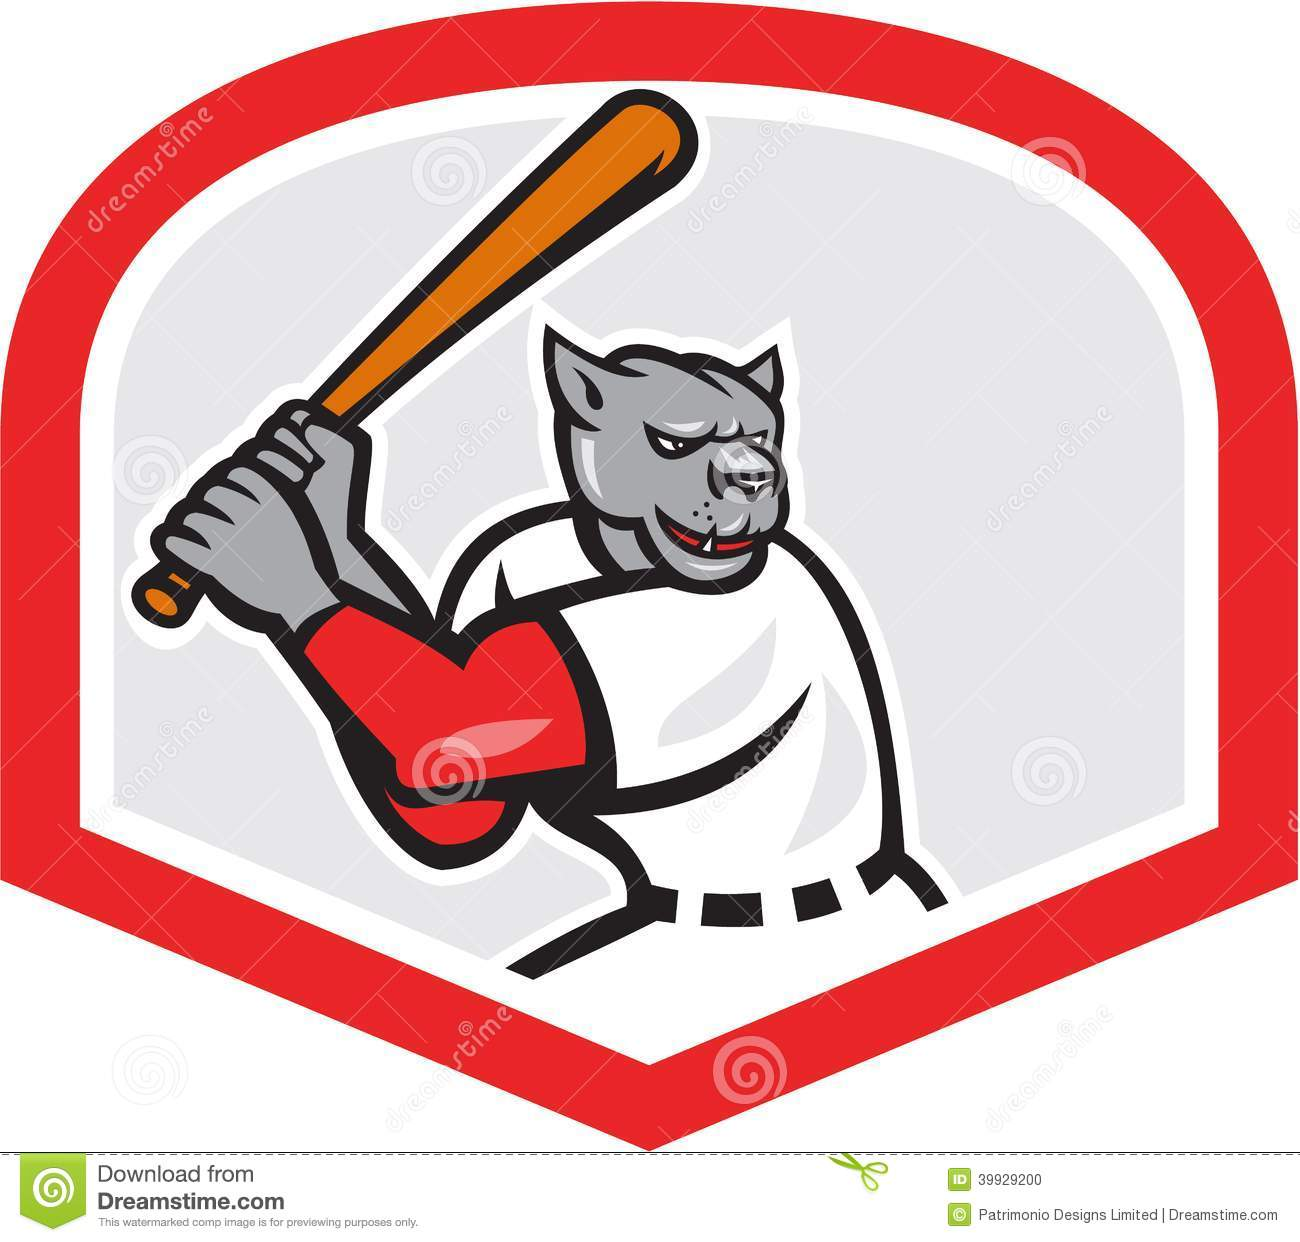 hight resolution of black panther baseball player batting cartoon